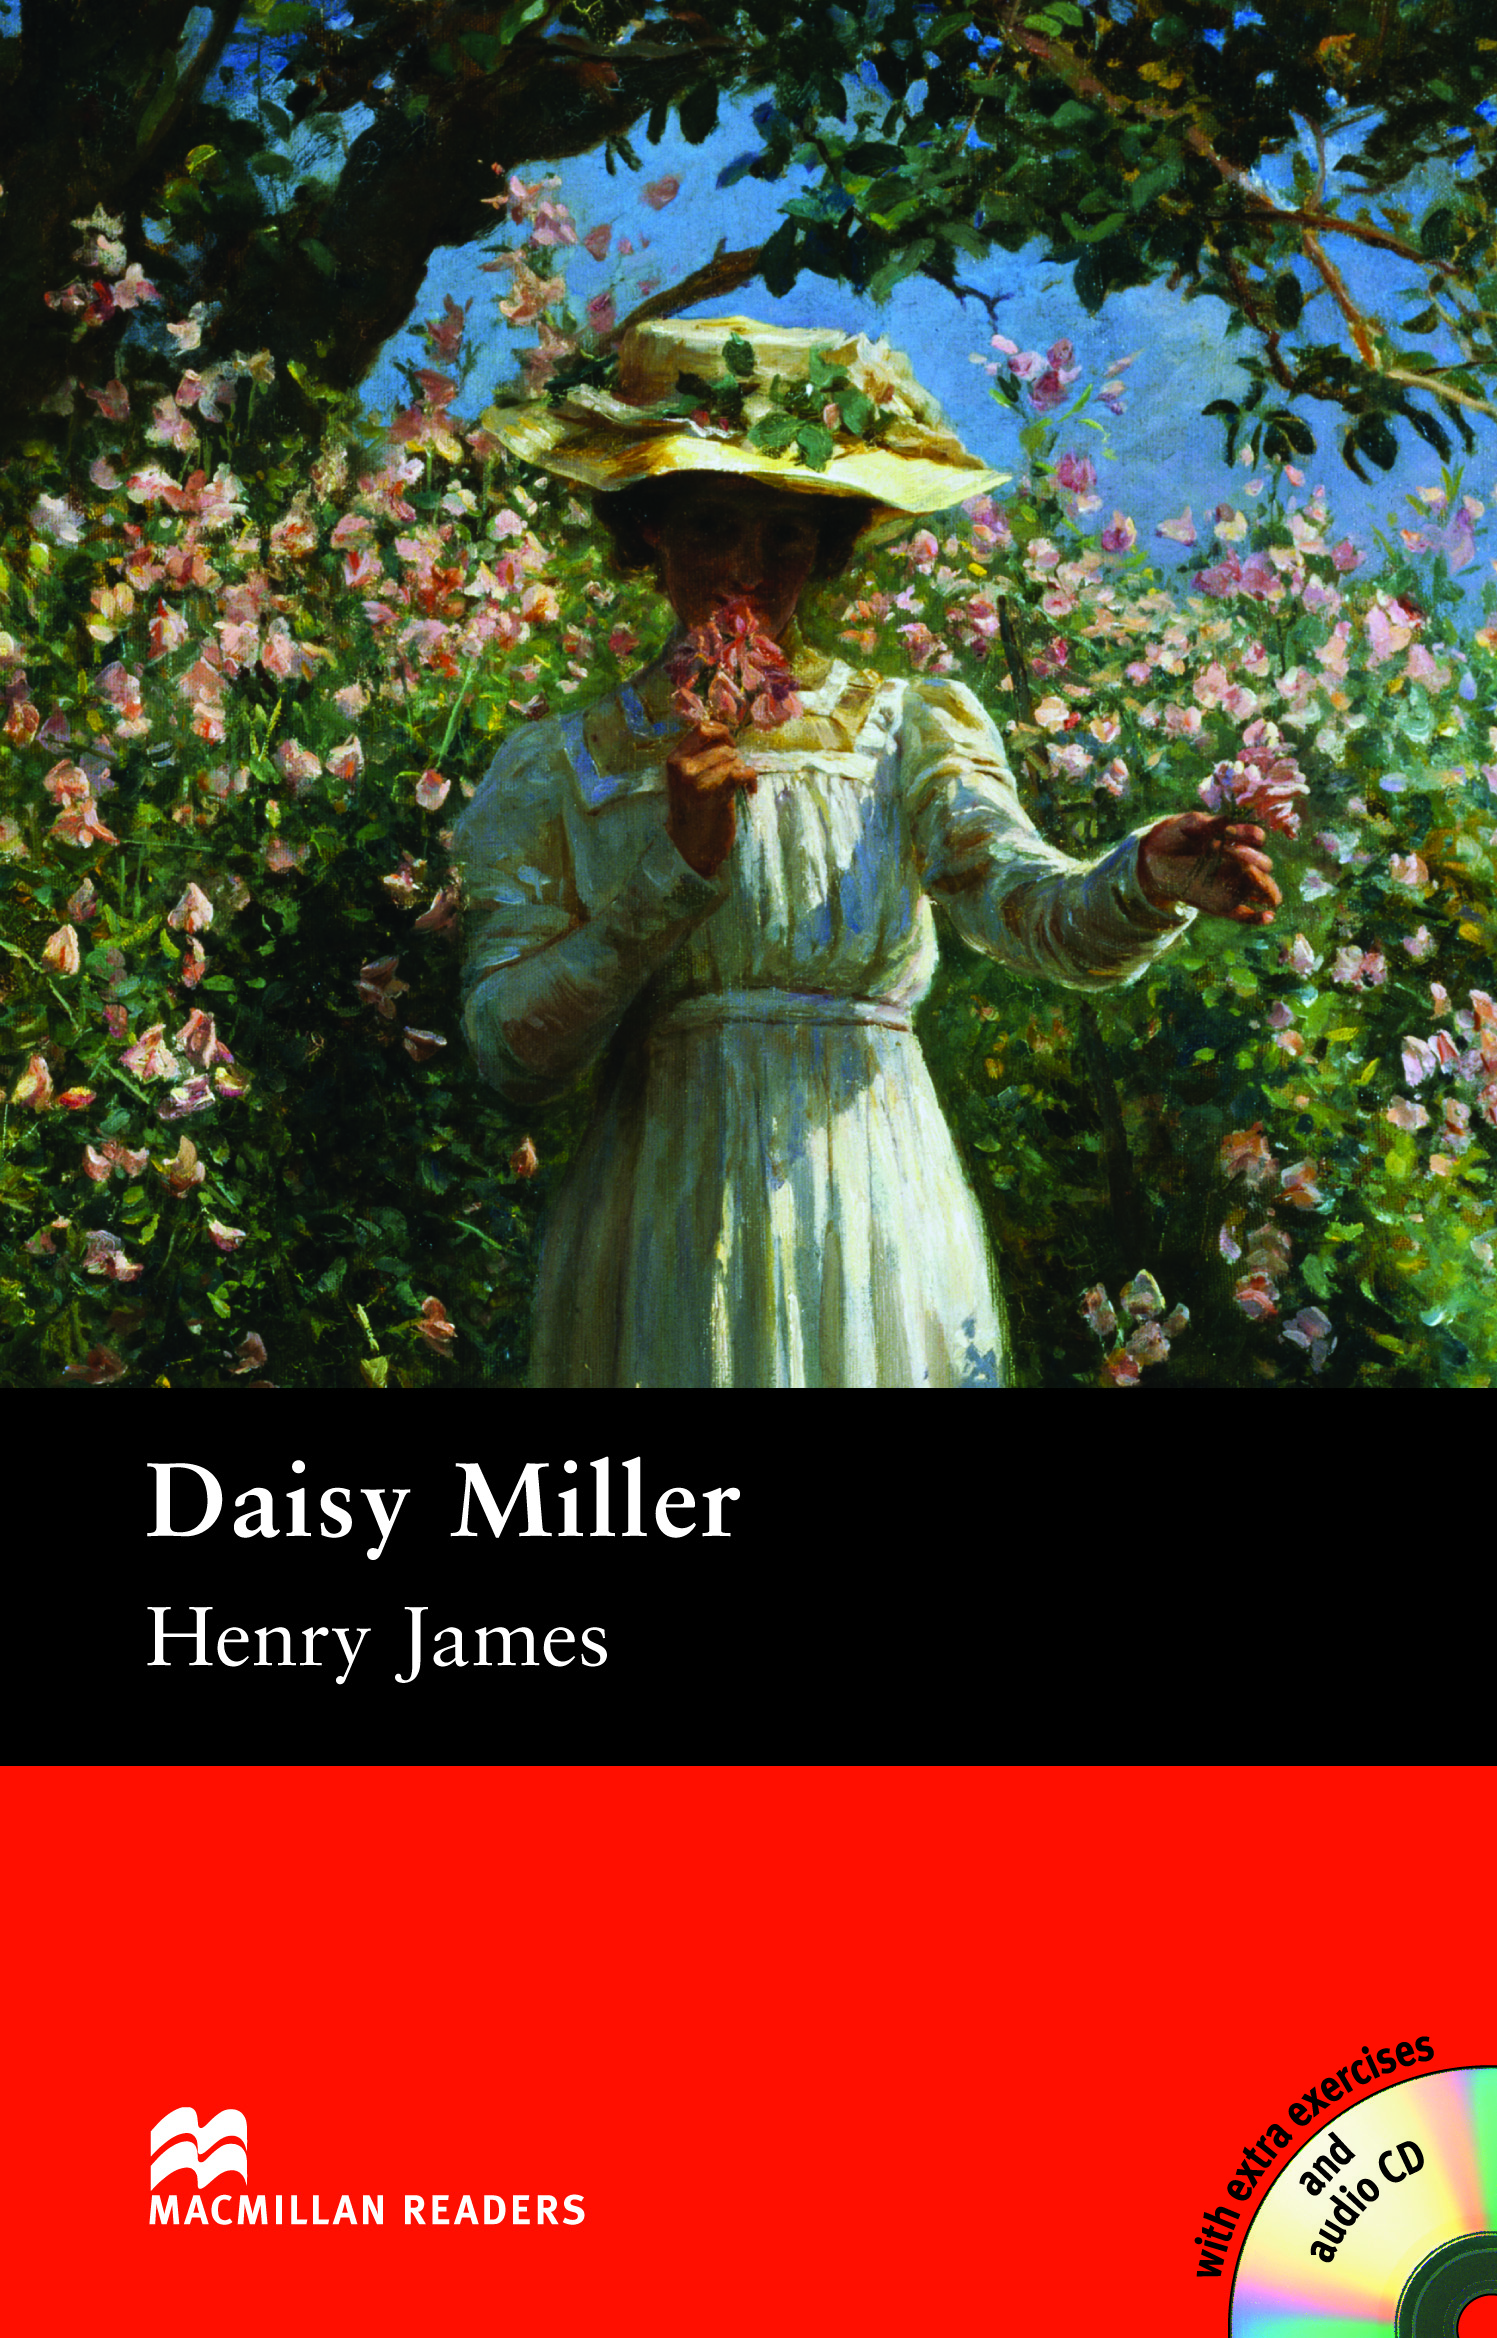 Macmillan Readers: Daisy Miller Pack